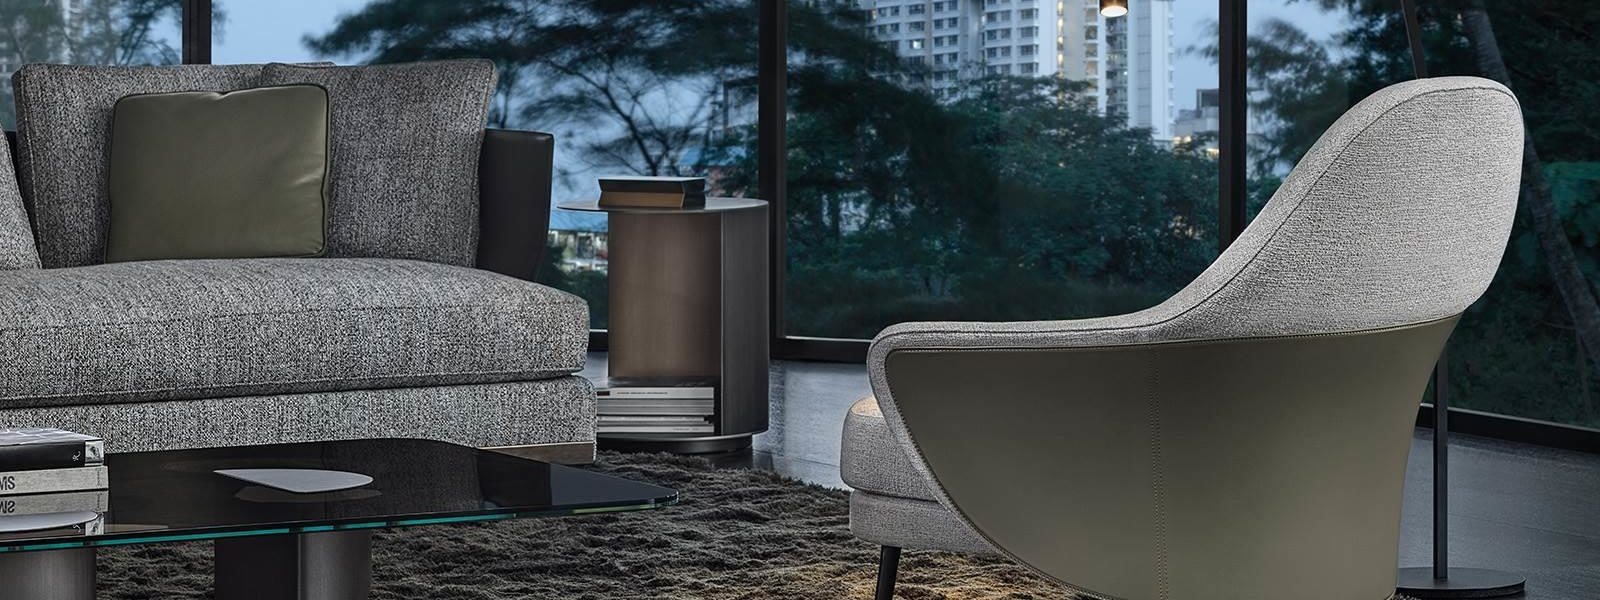 Minotti Angie Armchair Wins Archiproducts Design Award